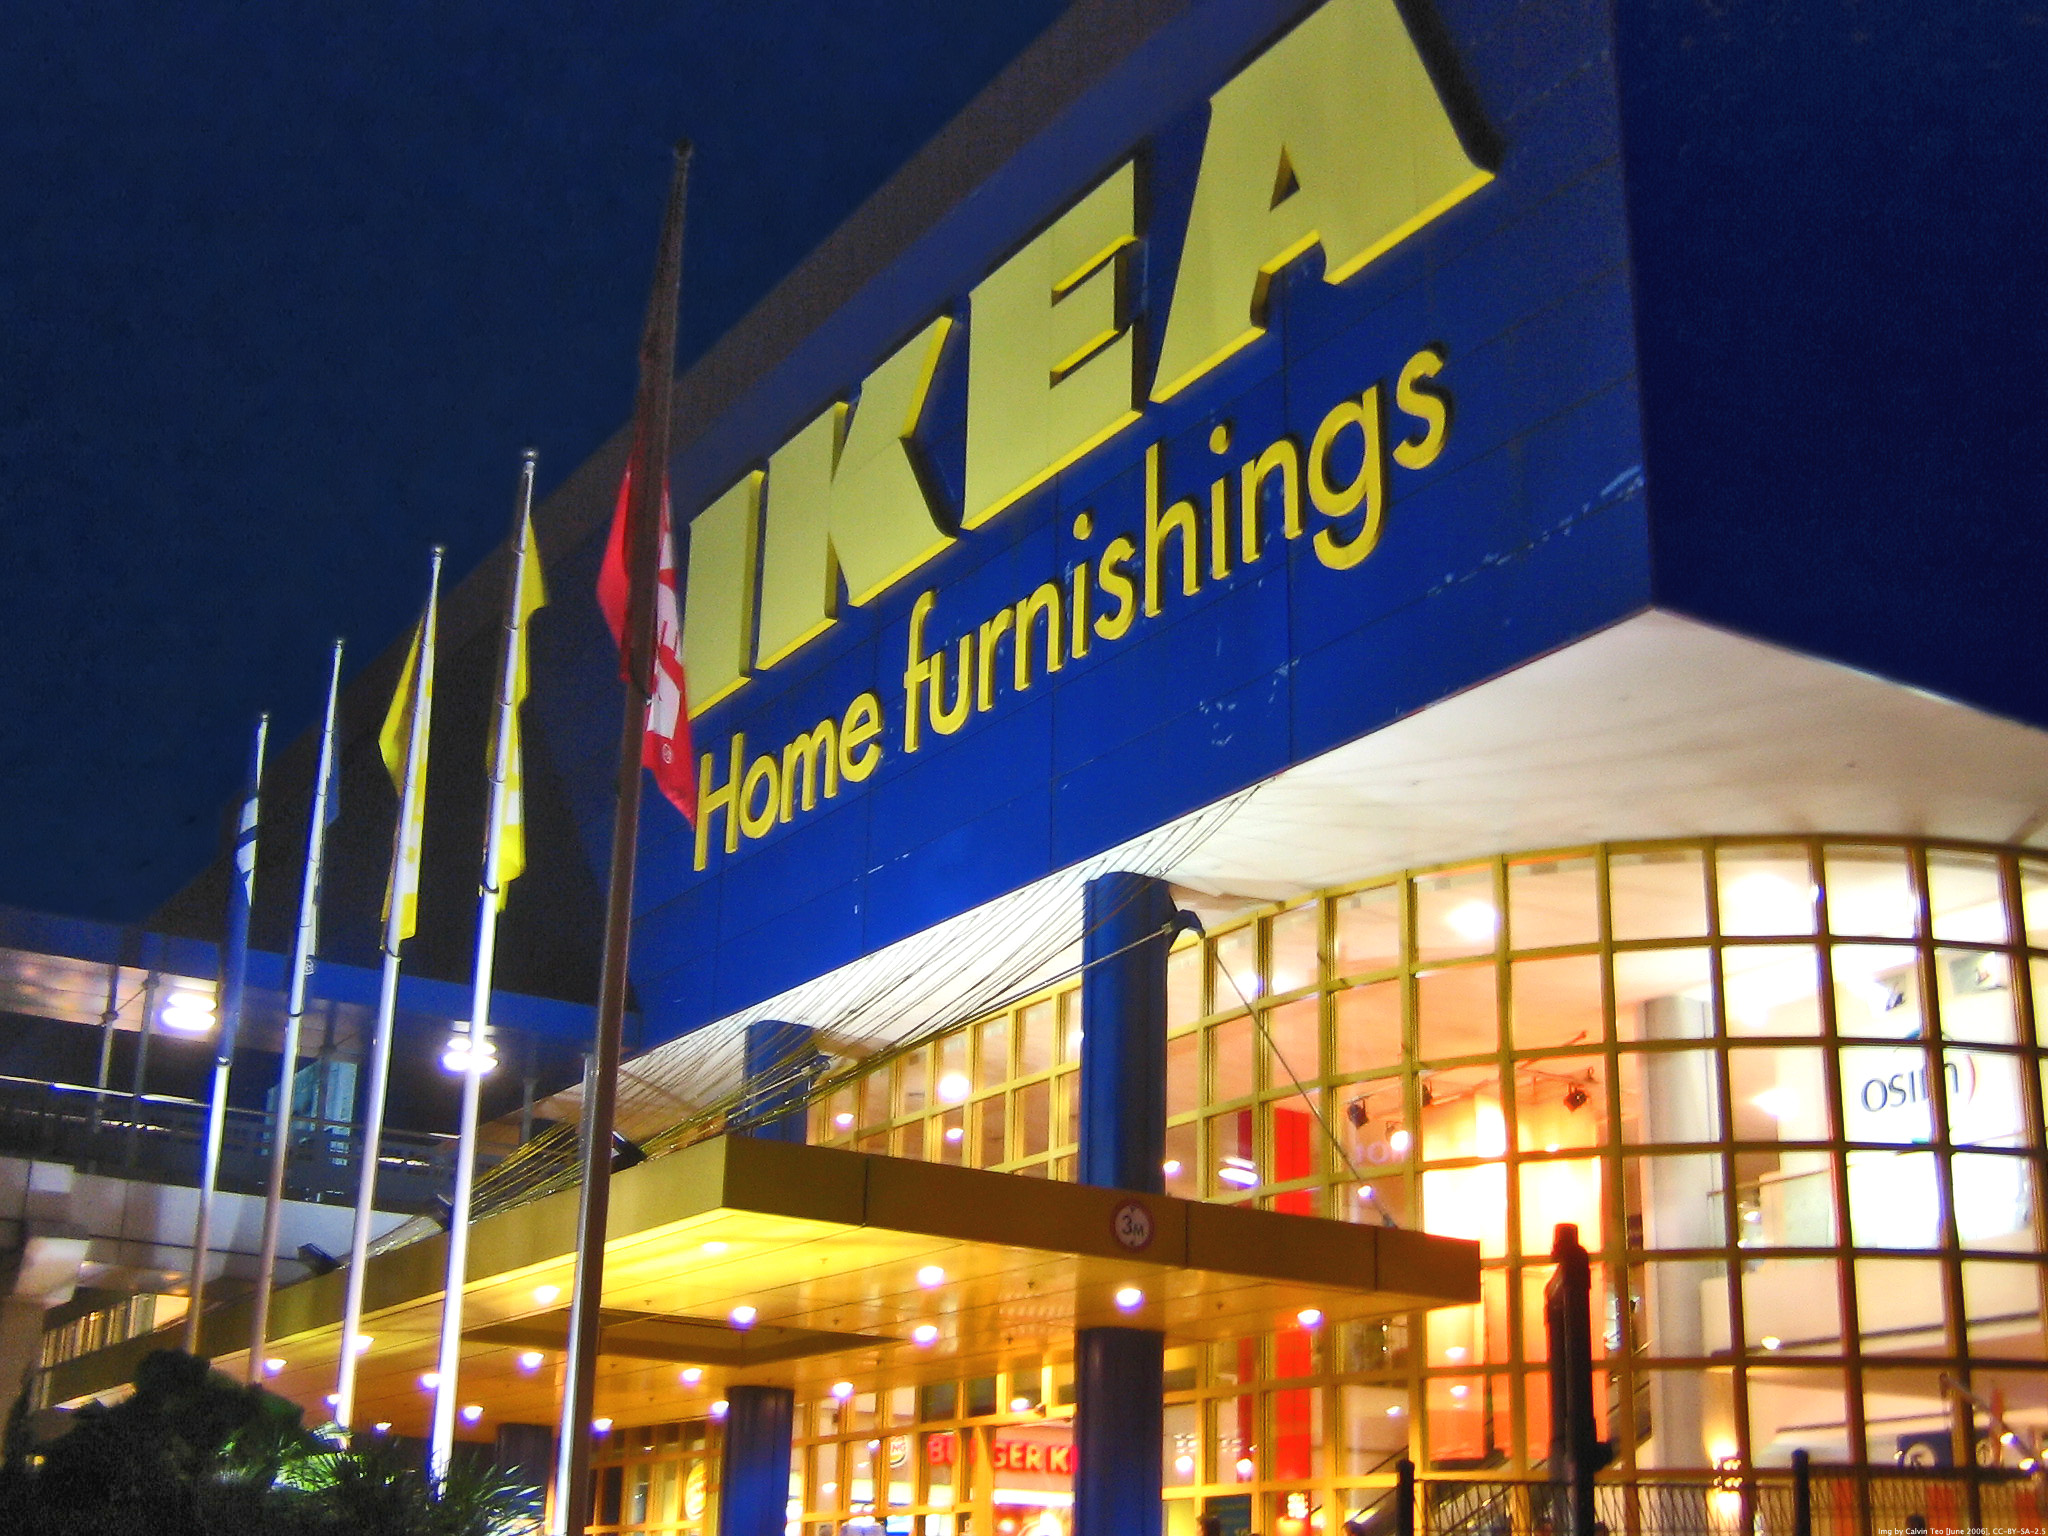 ikea in china sweden and the uk essay For ikea the step into the chinese market was a big step, maybe as big at the  first step abroad to switzerland and the first store on foreign soil (spreitenbach) in .